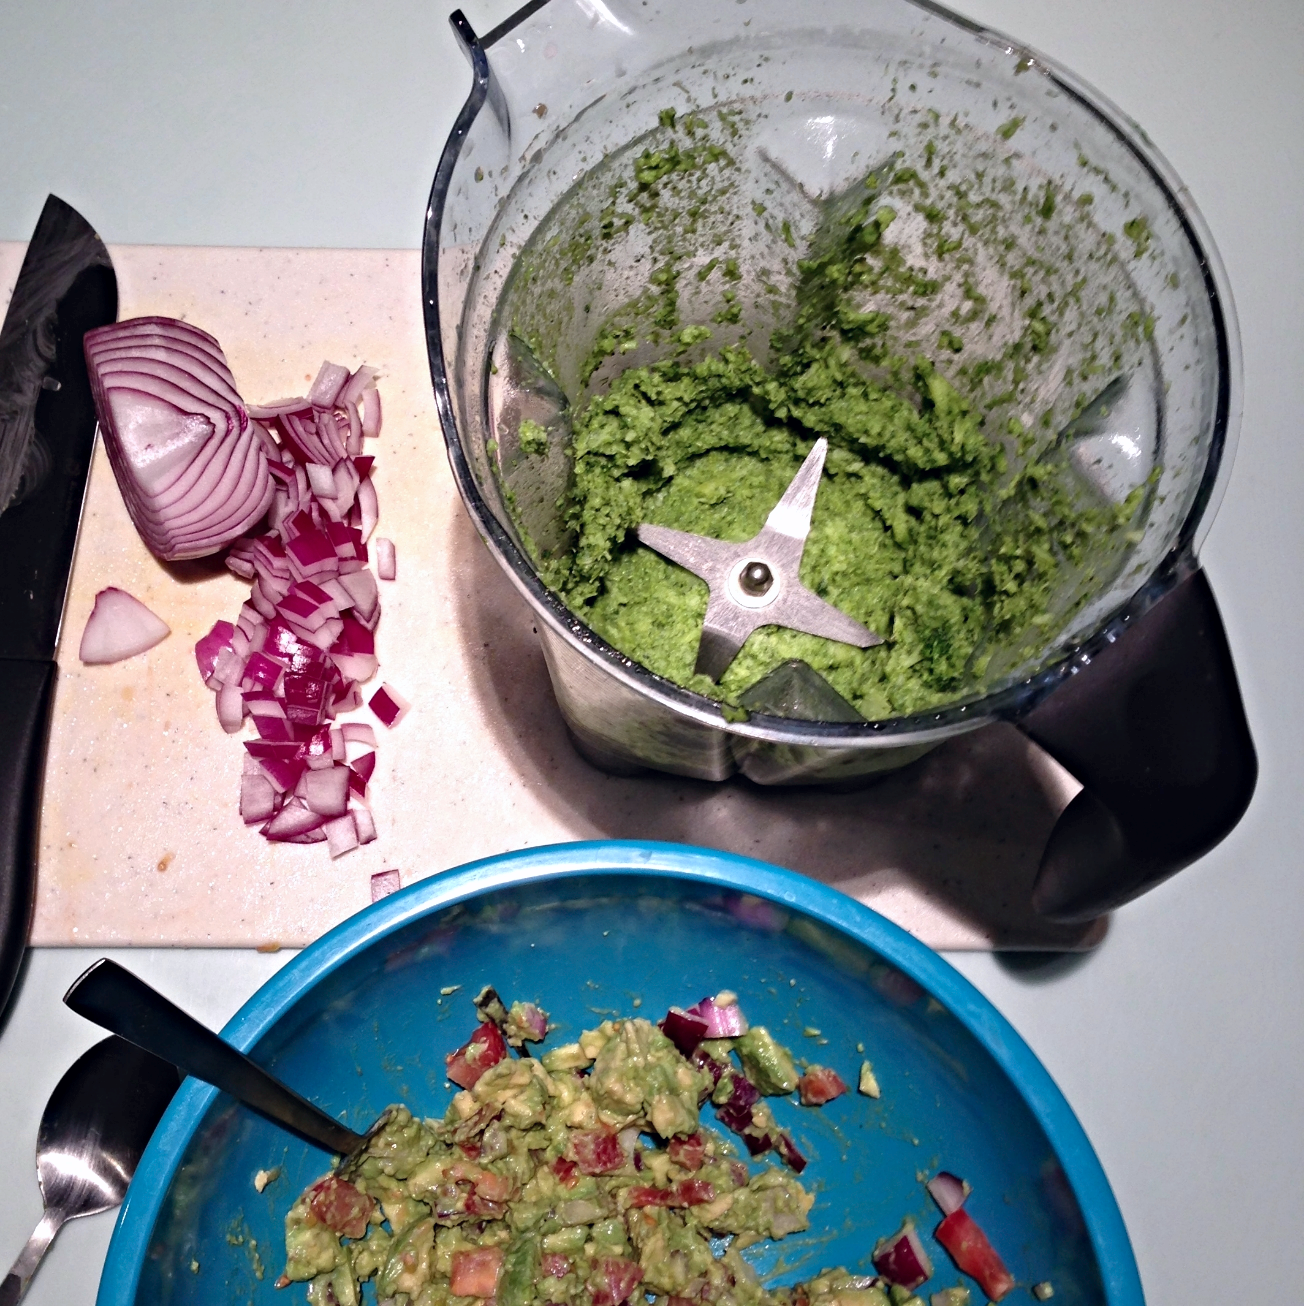 Guacamole in the process. Not so pretty. But tasty as fuhhh.